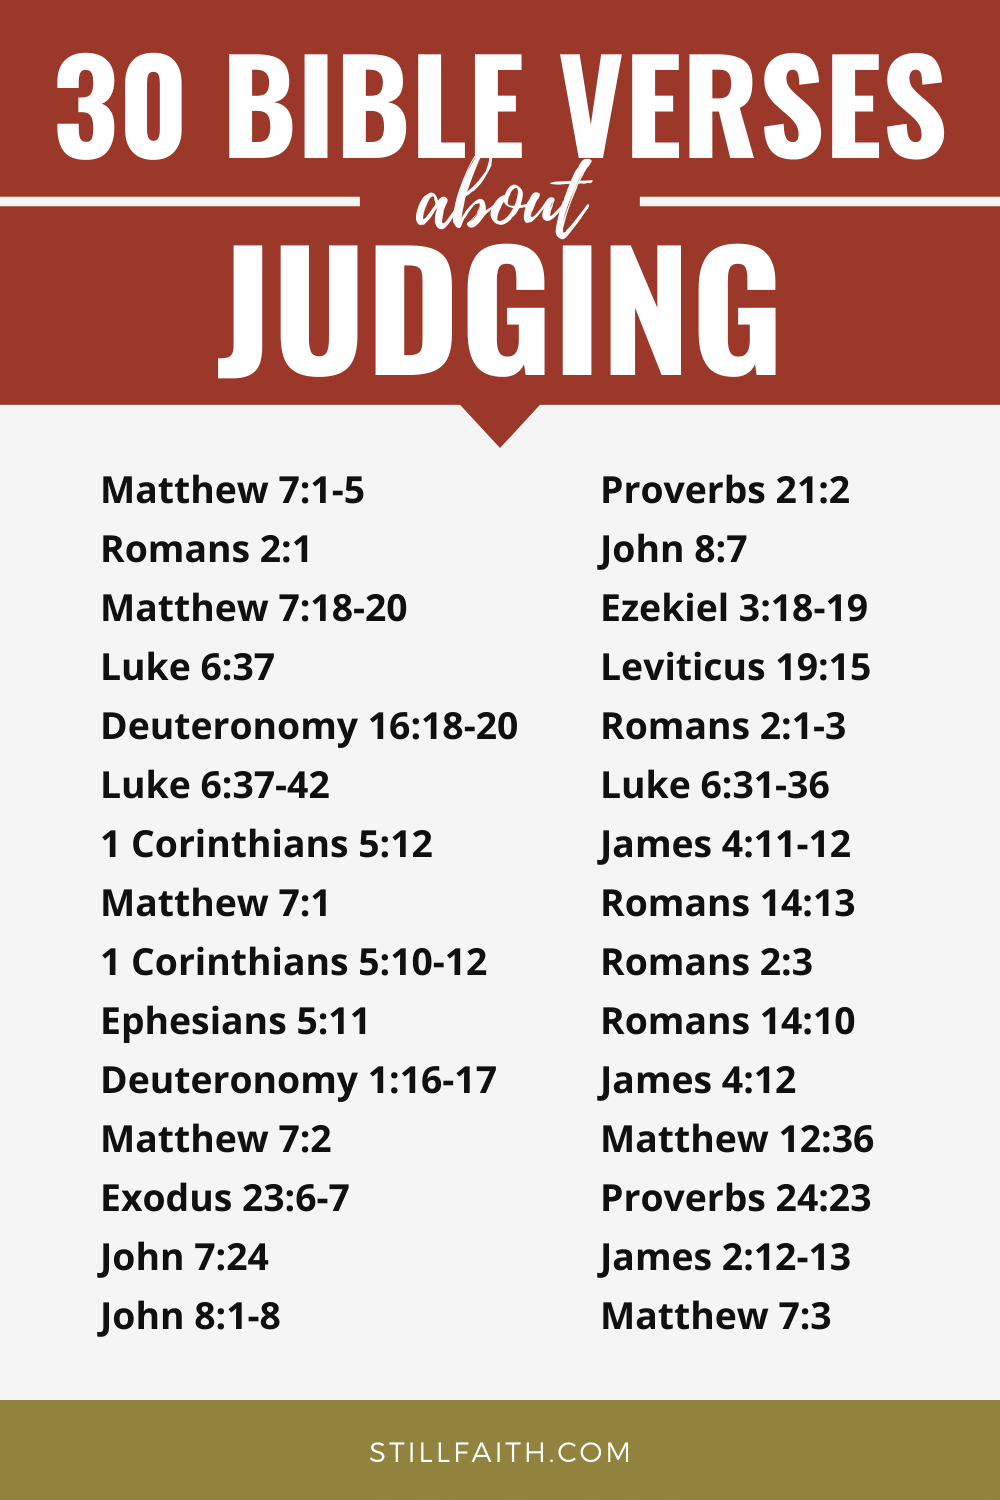 194 Bible Verses about Judging